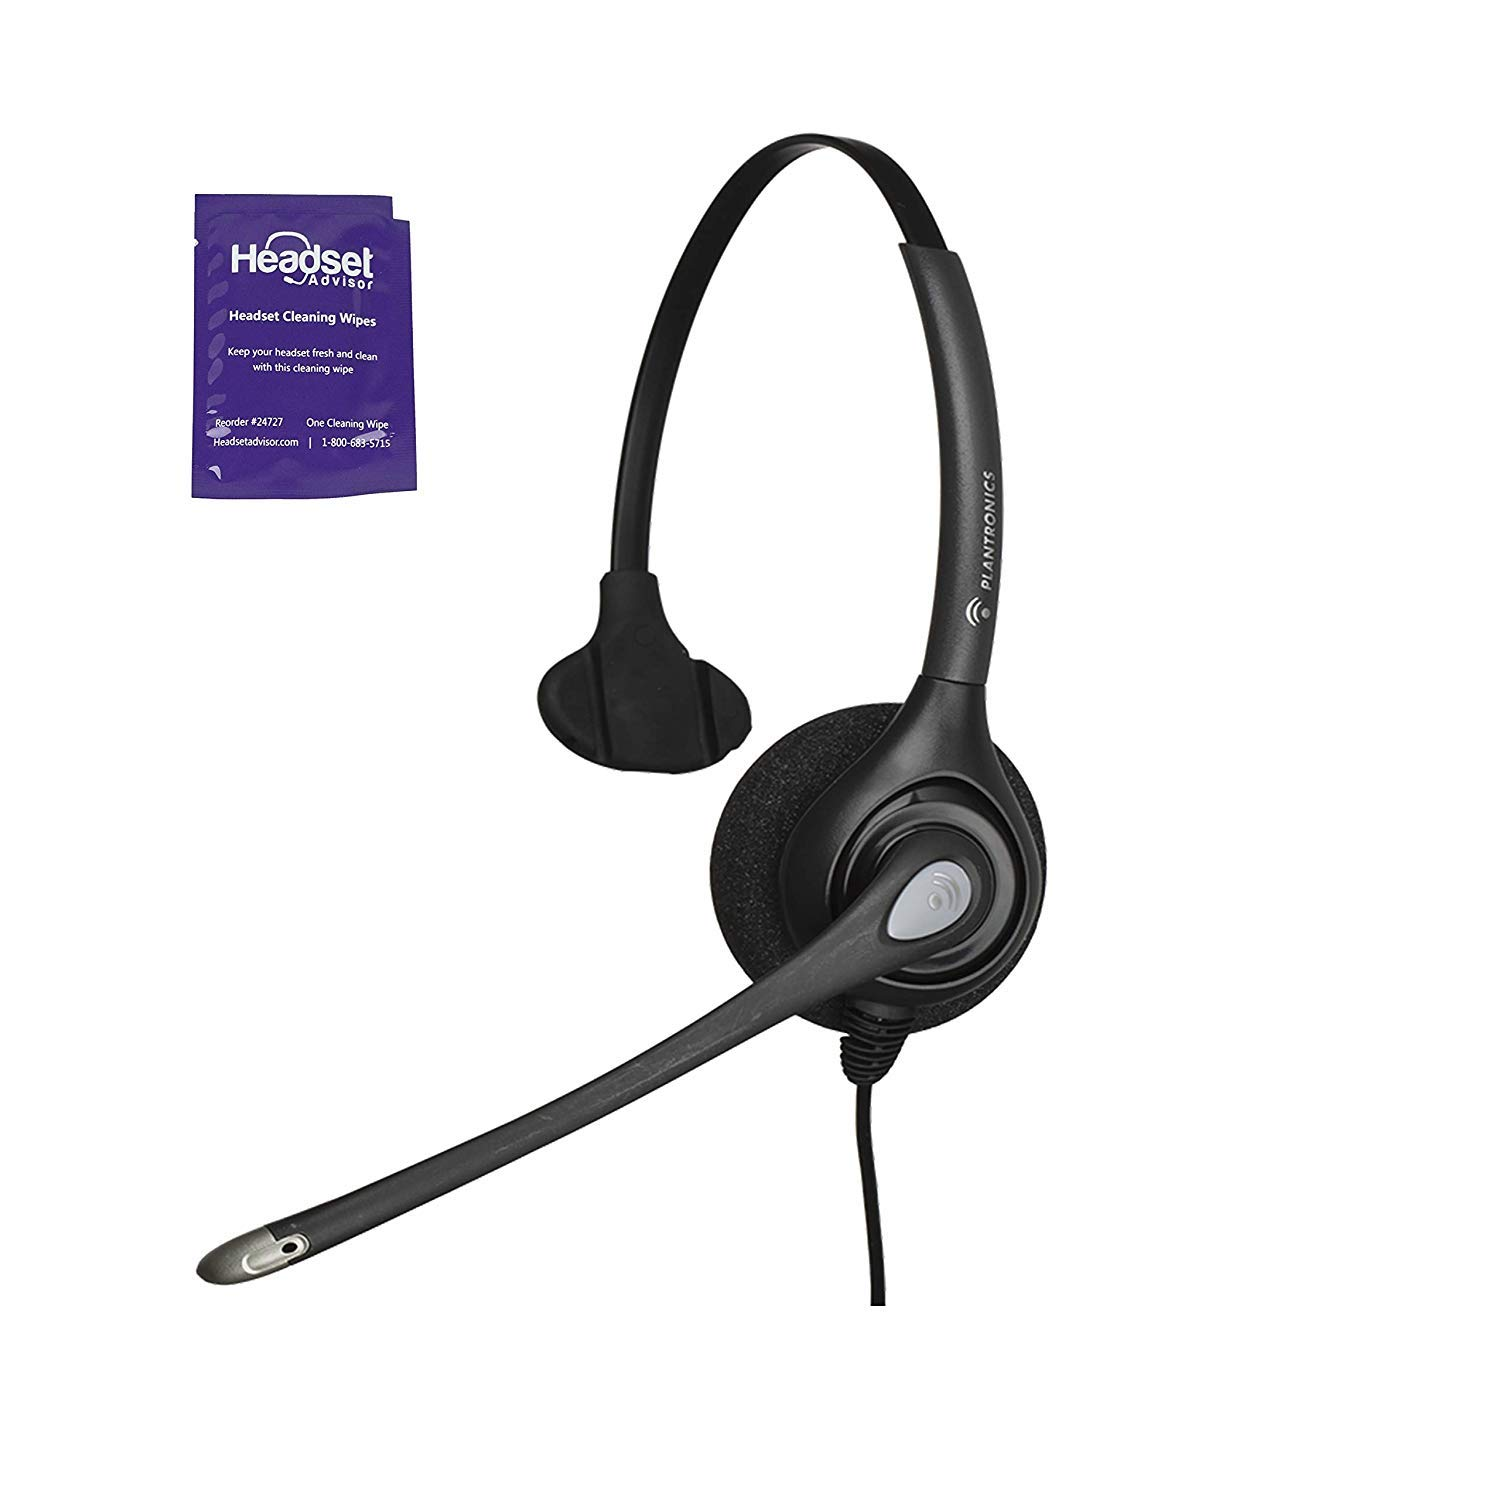 Plantronics HW251n Wired Office Headset Bundle With Headset Advisor Wipe (Renewed) by Plantronics